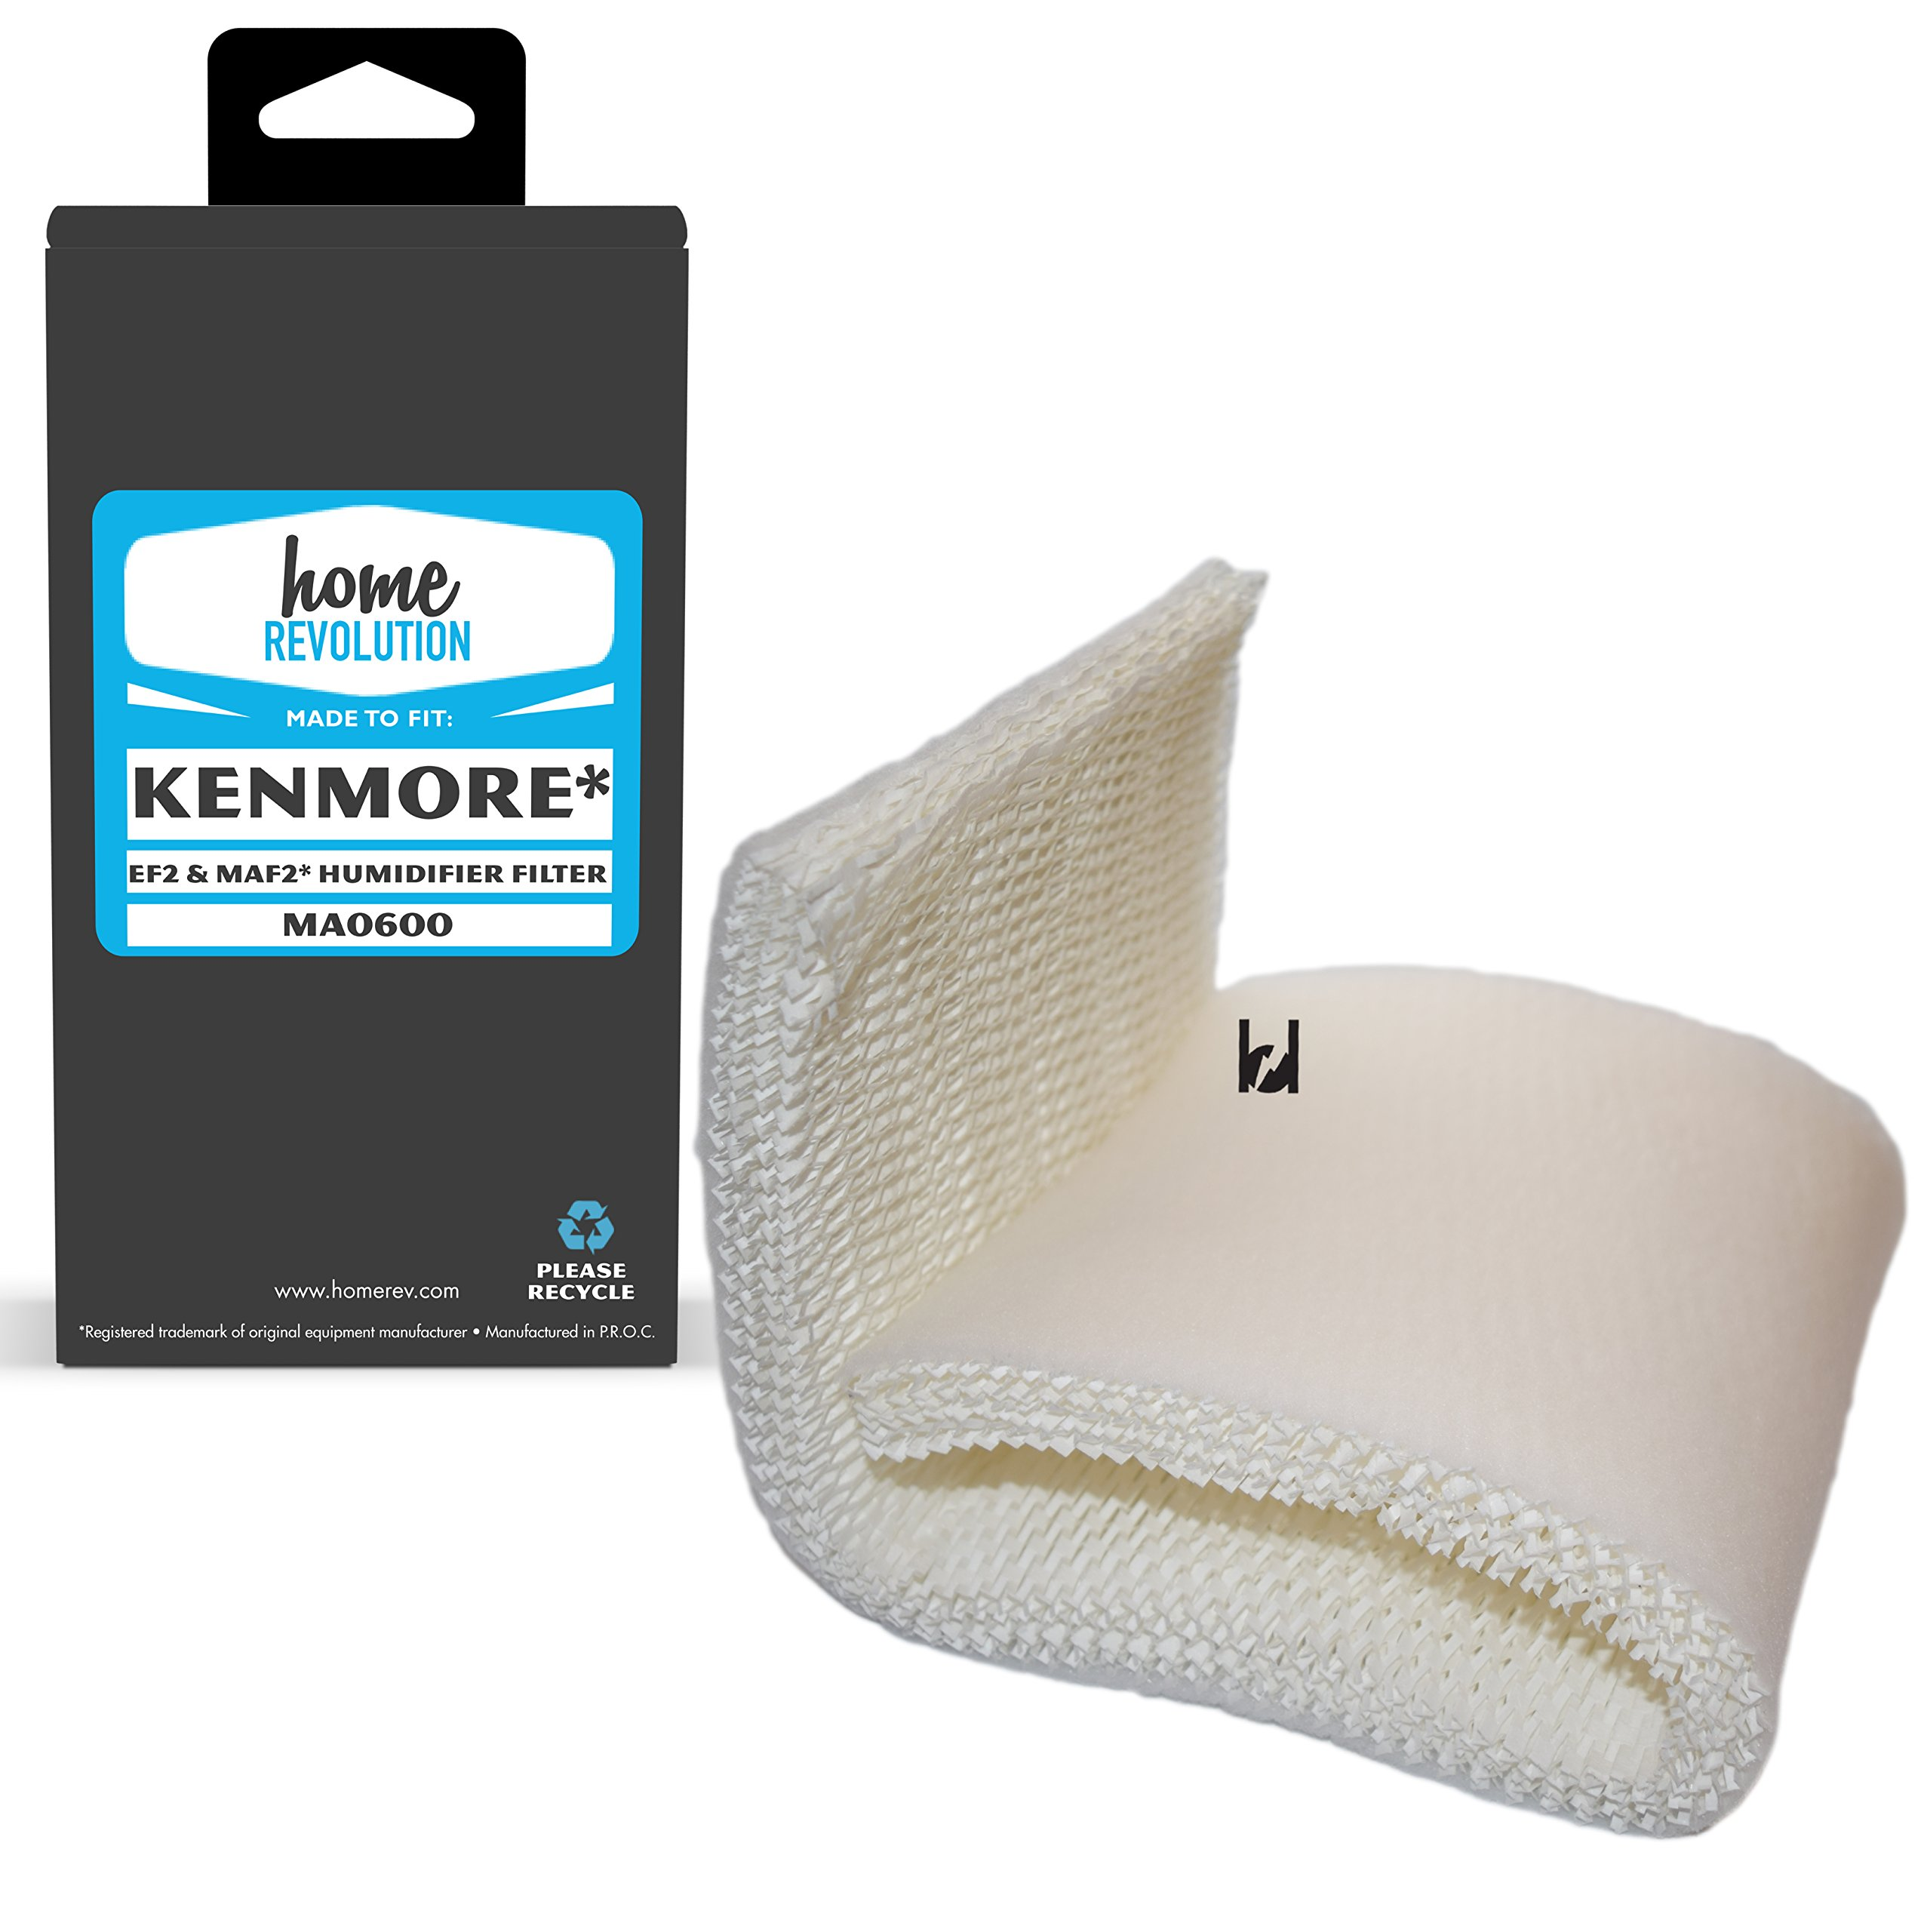 Kenmore EF2 and Emerson MAF2 Part # MA0600, 0800 and 80000 for Kenmore 15408, 154080, 17006, 29706, 29988 and 29880C, Comparable Washable Filter. Home Revolution Brand Quality Aftermarket Replacement